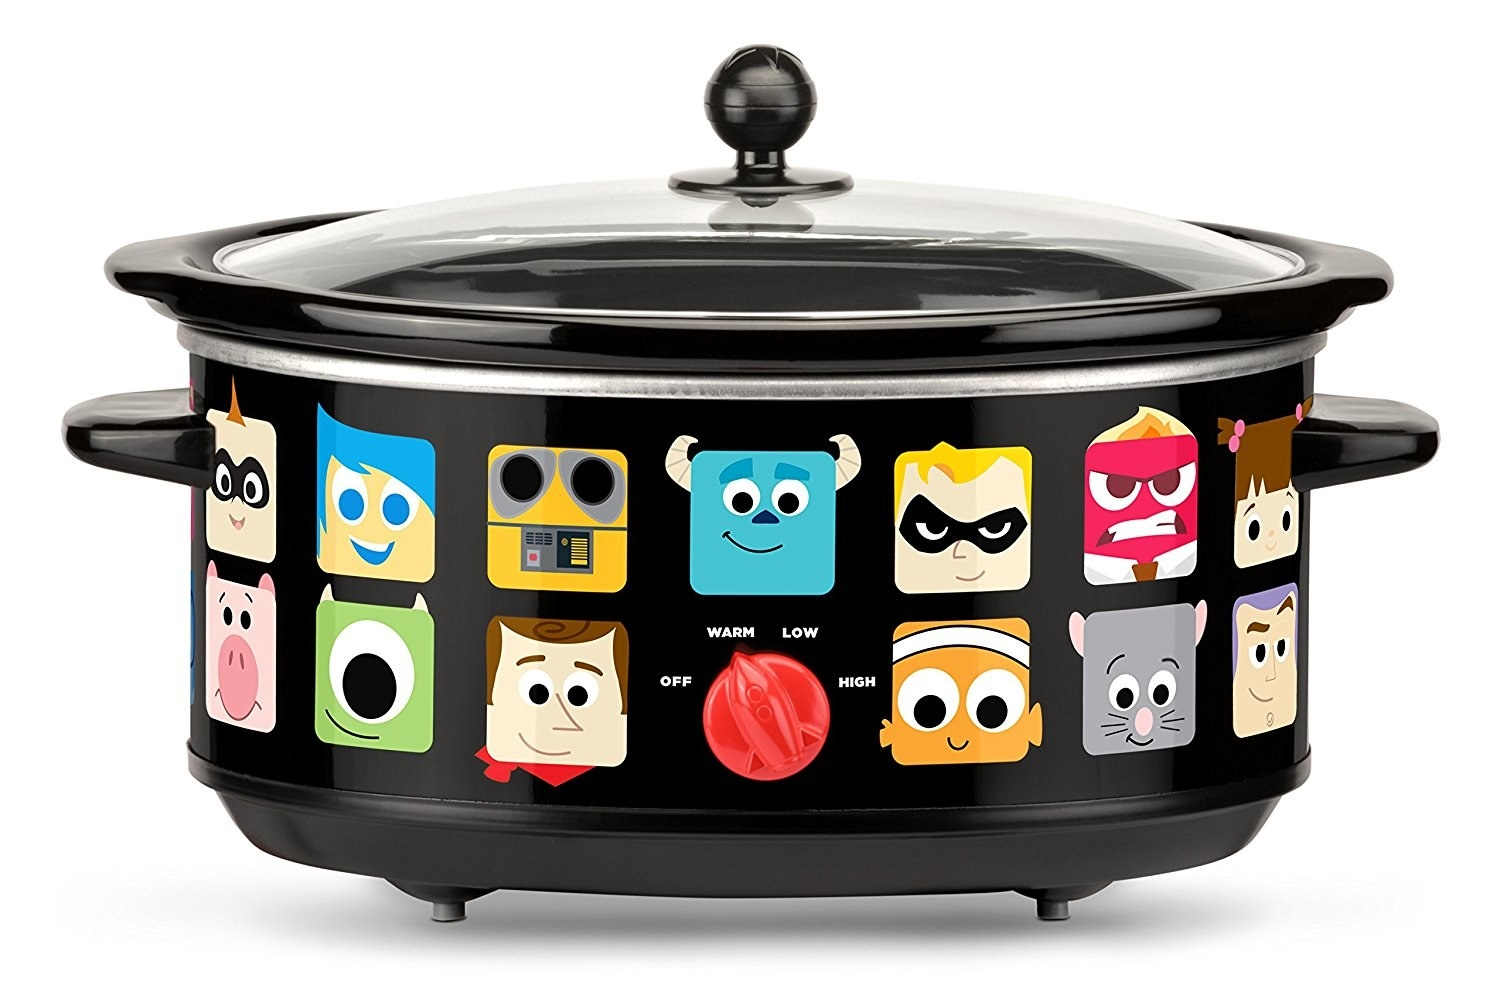 The black slow cooker with illustrated icons of Disney and Pixar characters like Sully, Joy, Woody, Nemo, and more